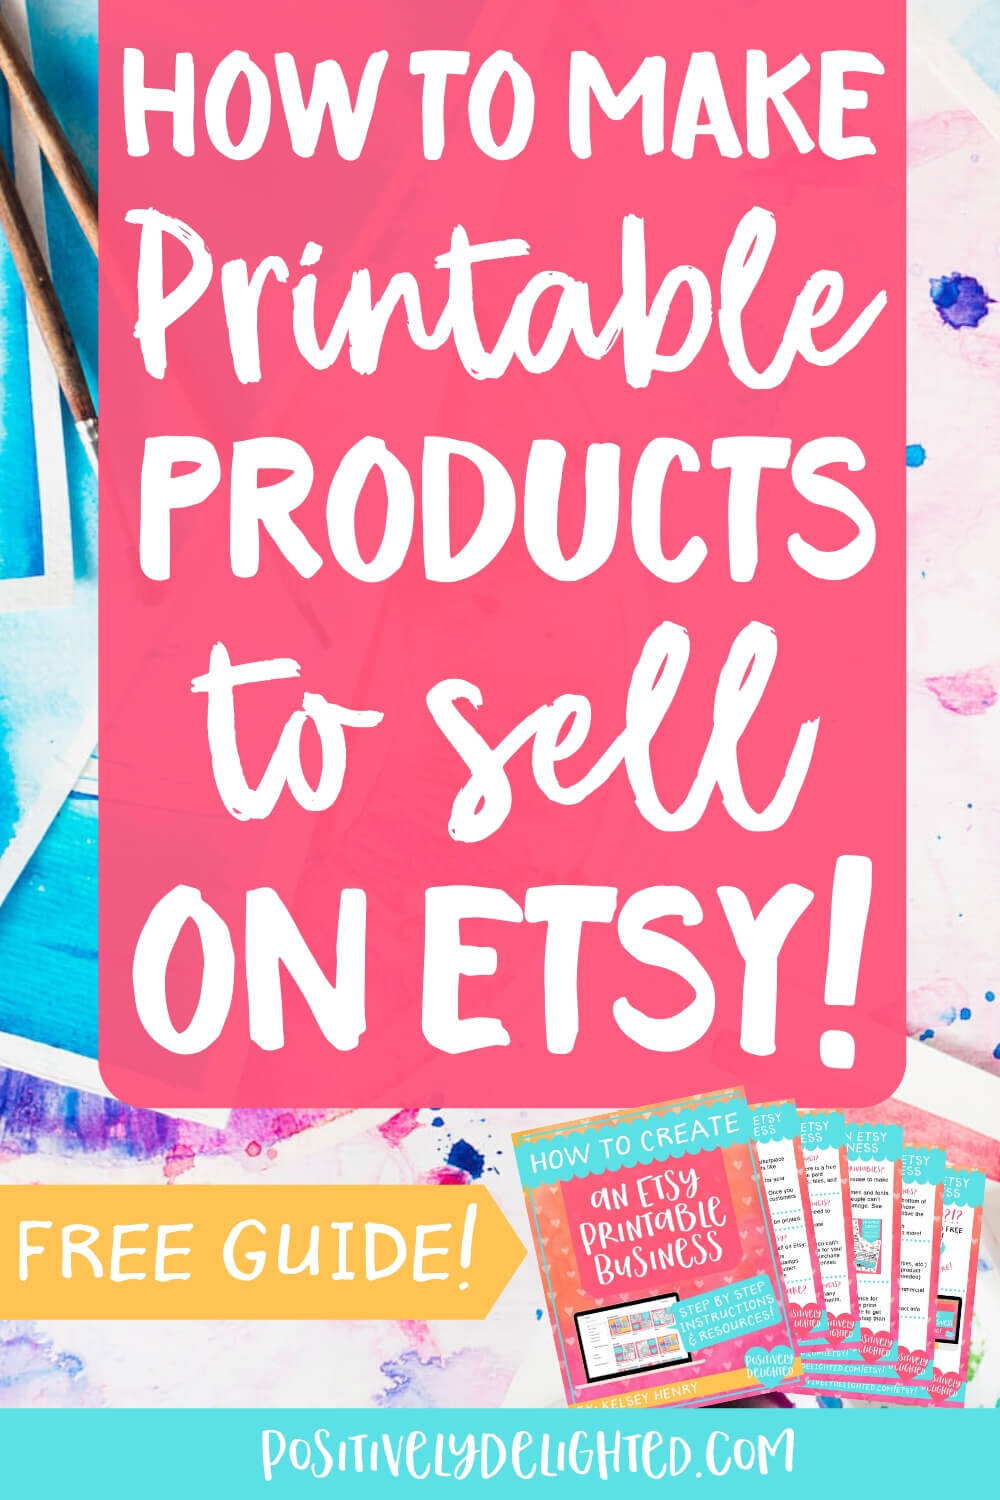 How to Make Printable Products to Sell on Etsy — Positively Delighted